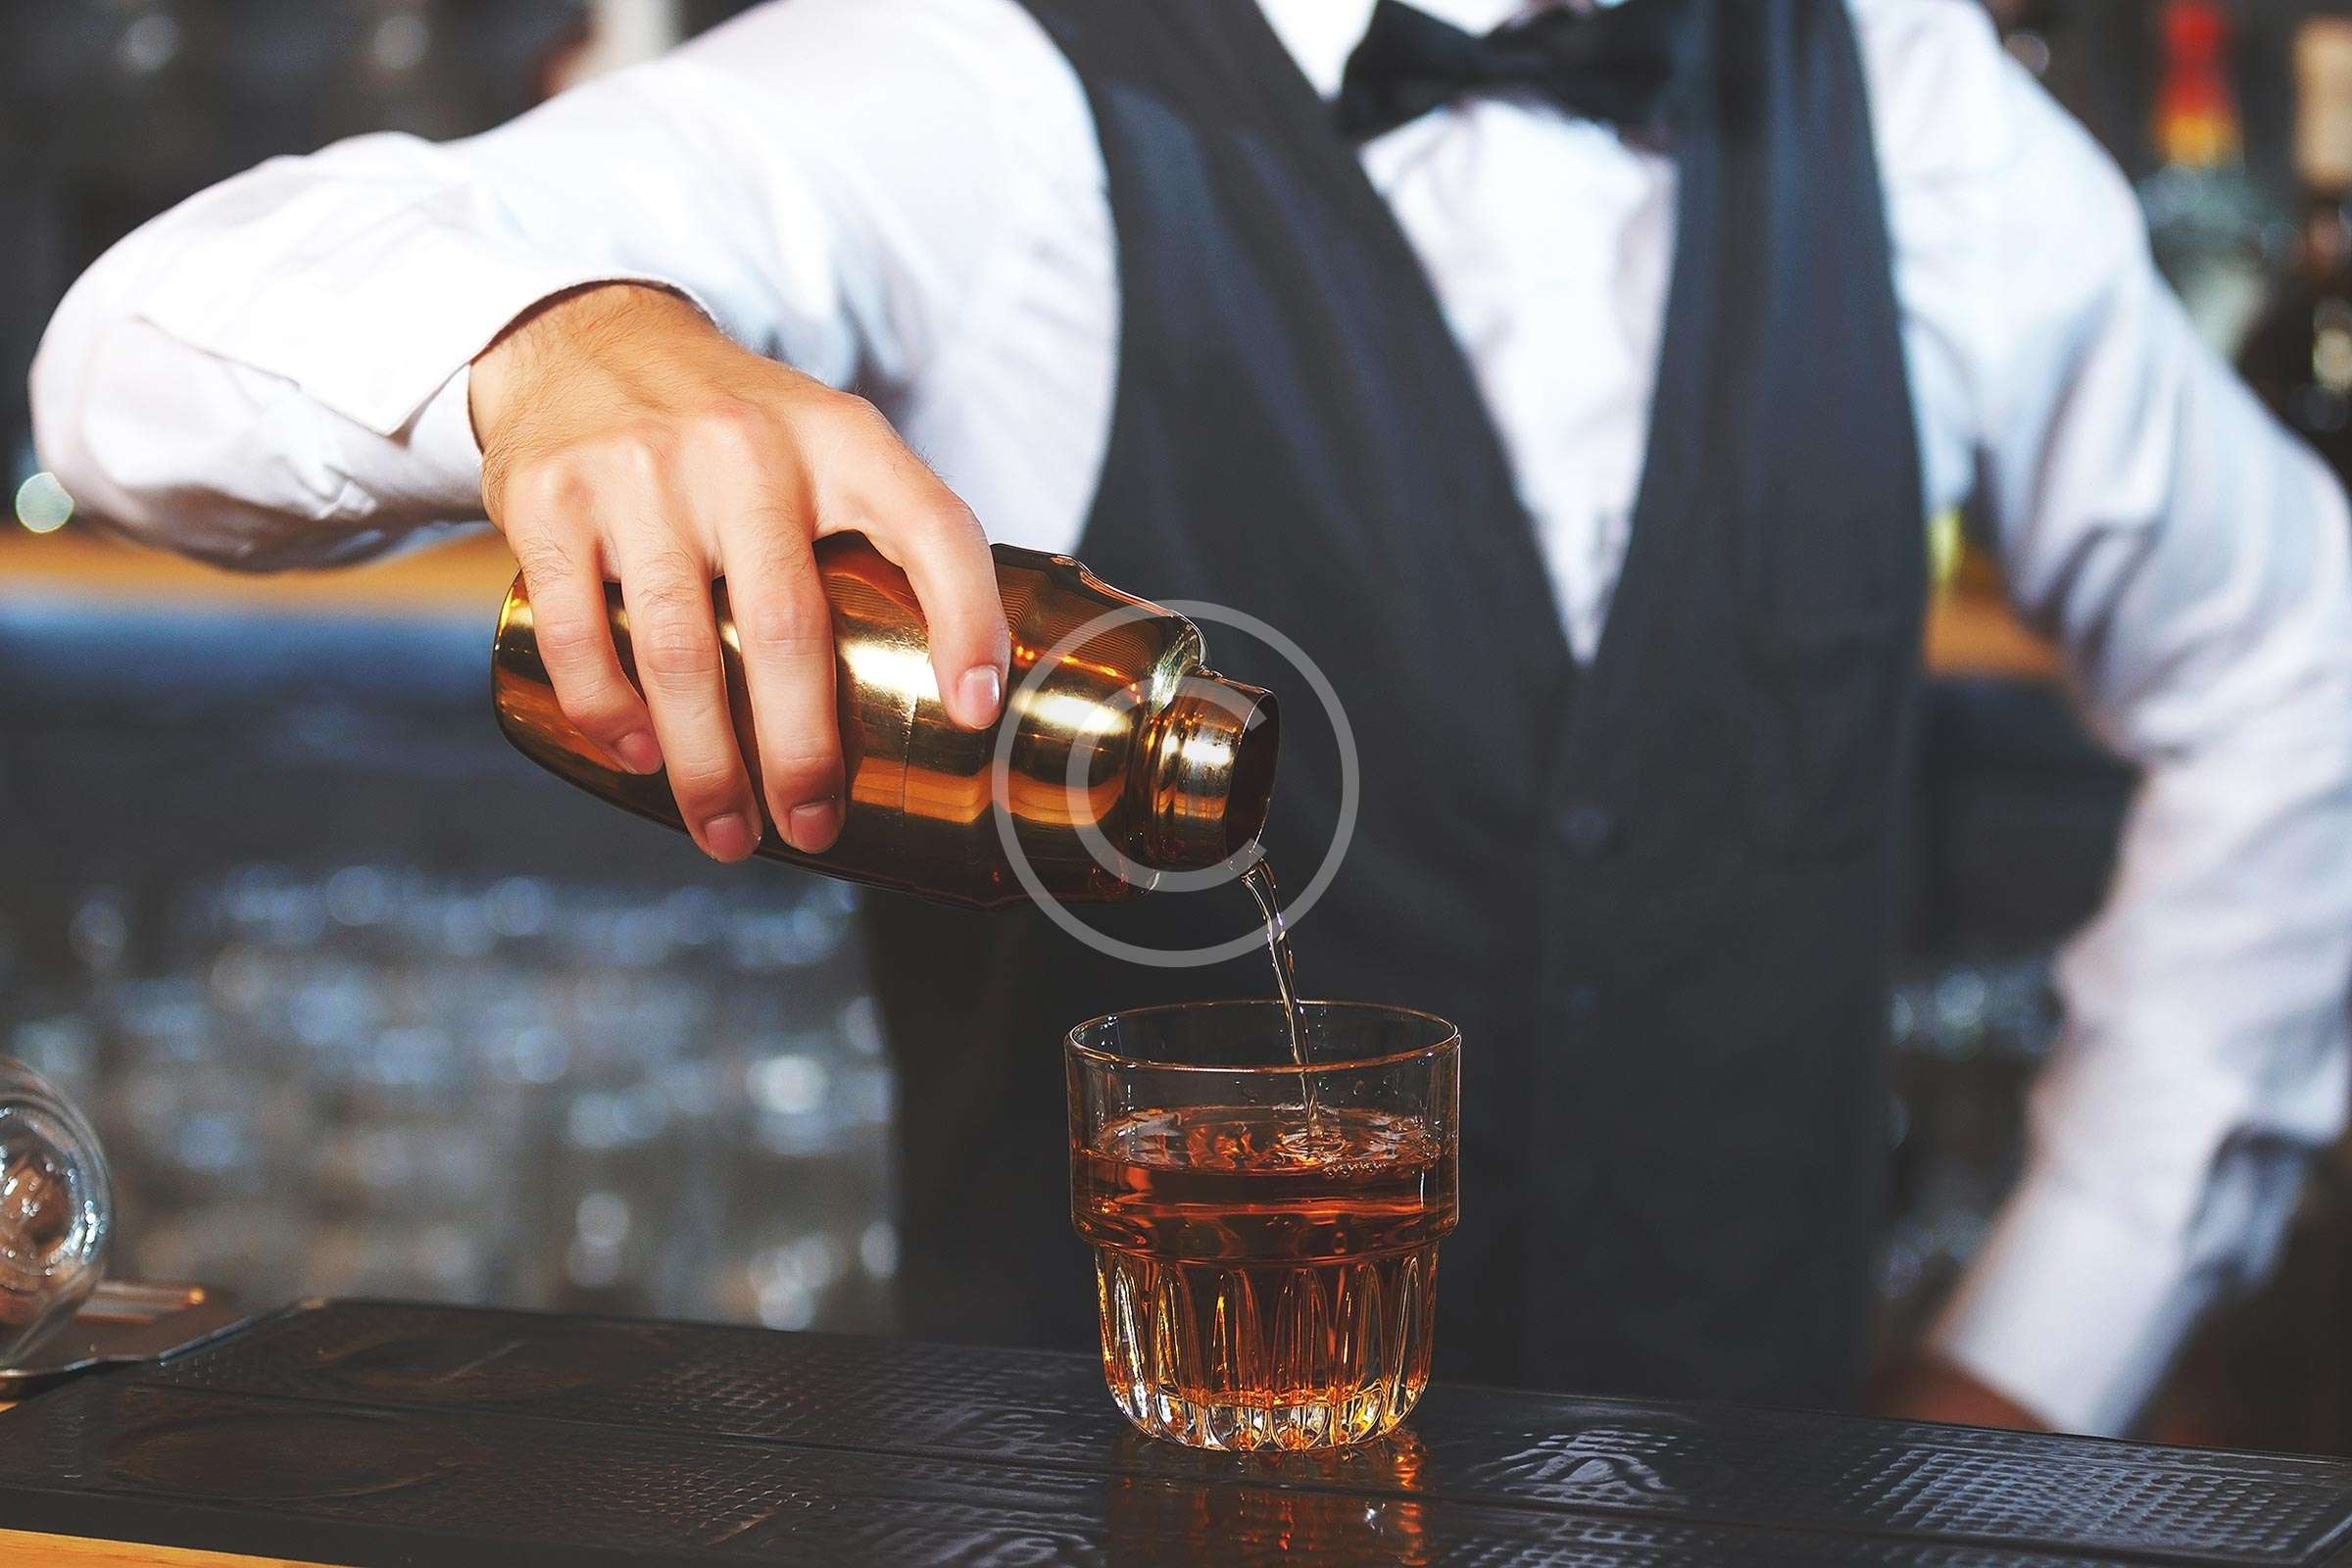 A Beginner's Guide to Making Coctails